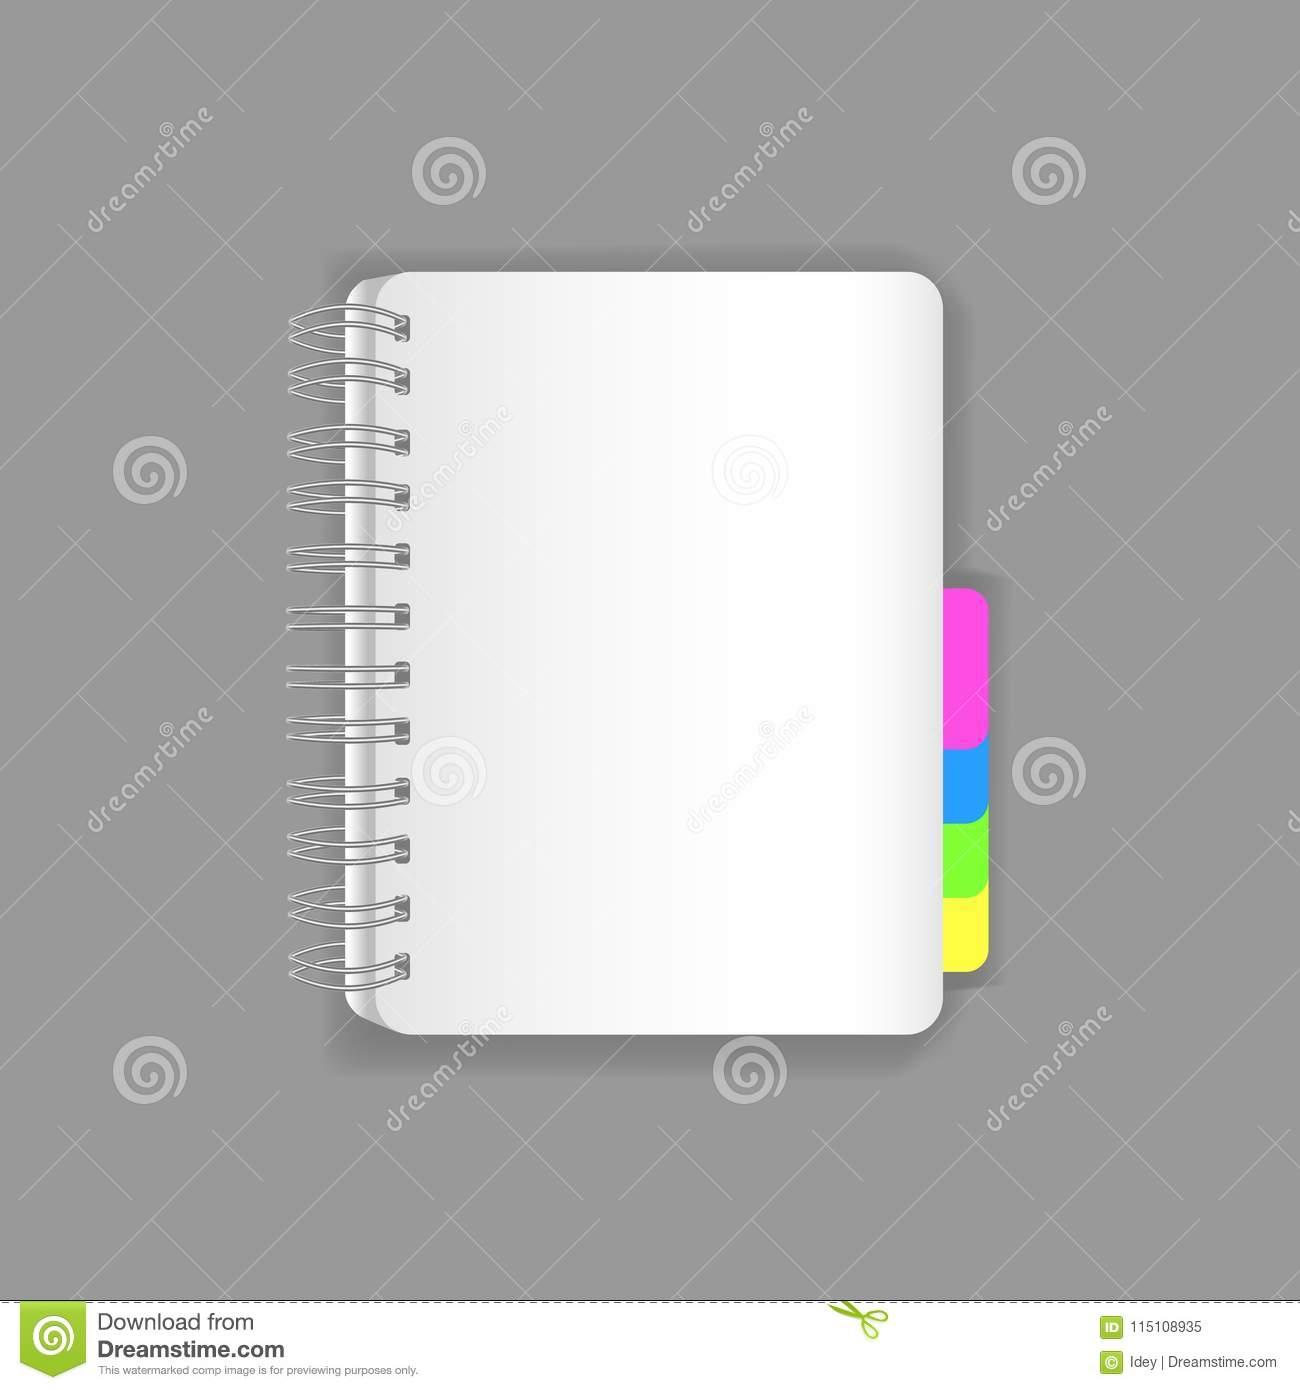 template notebook empty flipchart with a spring and colored tabs